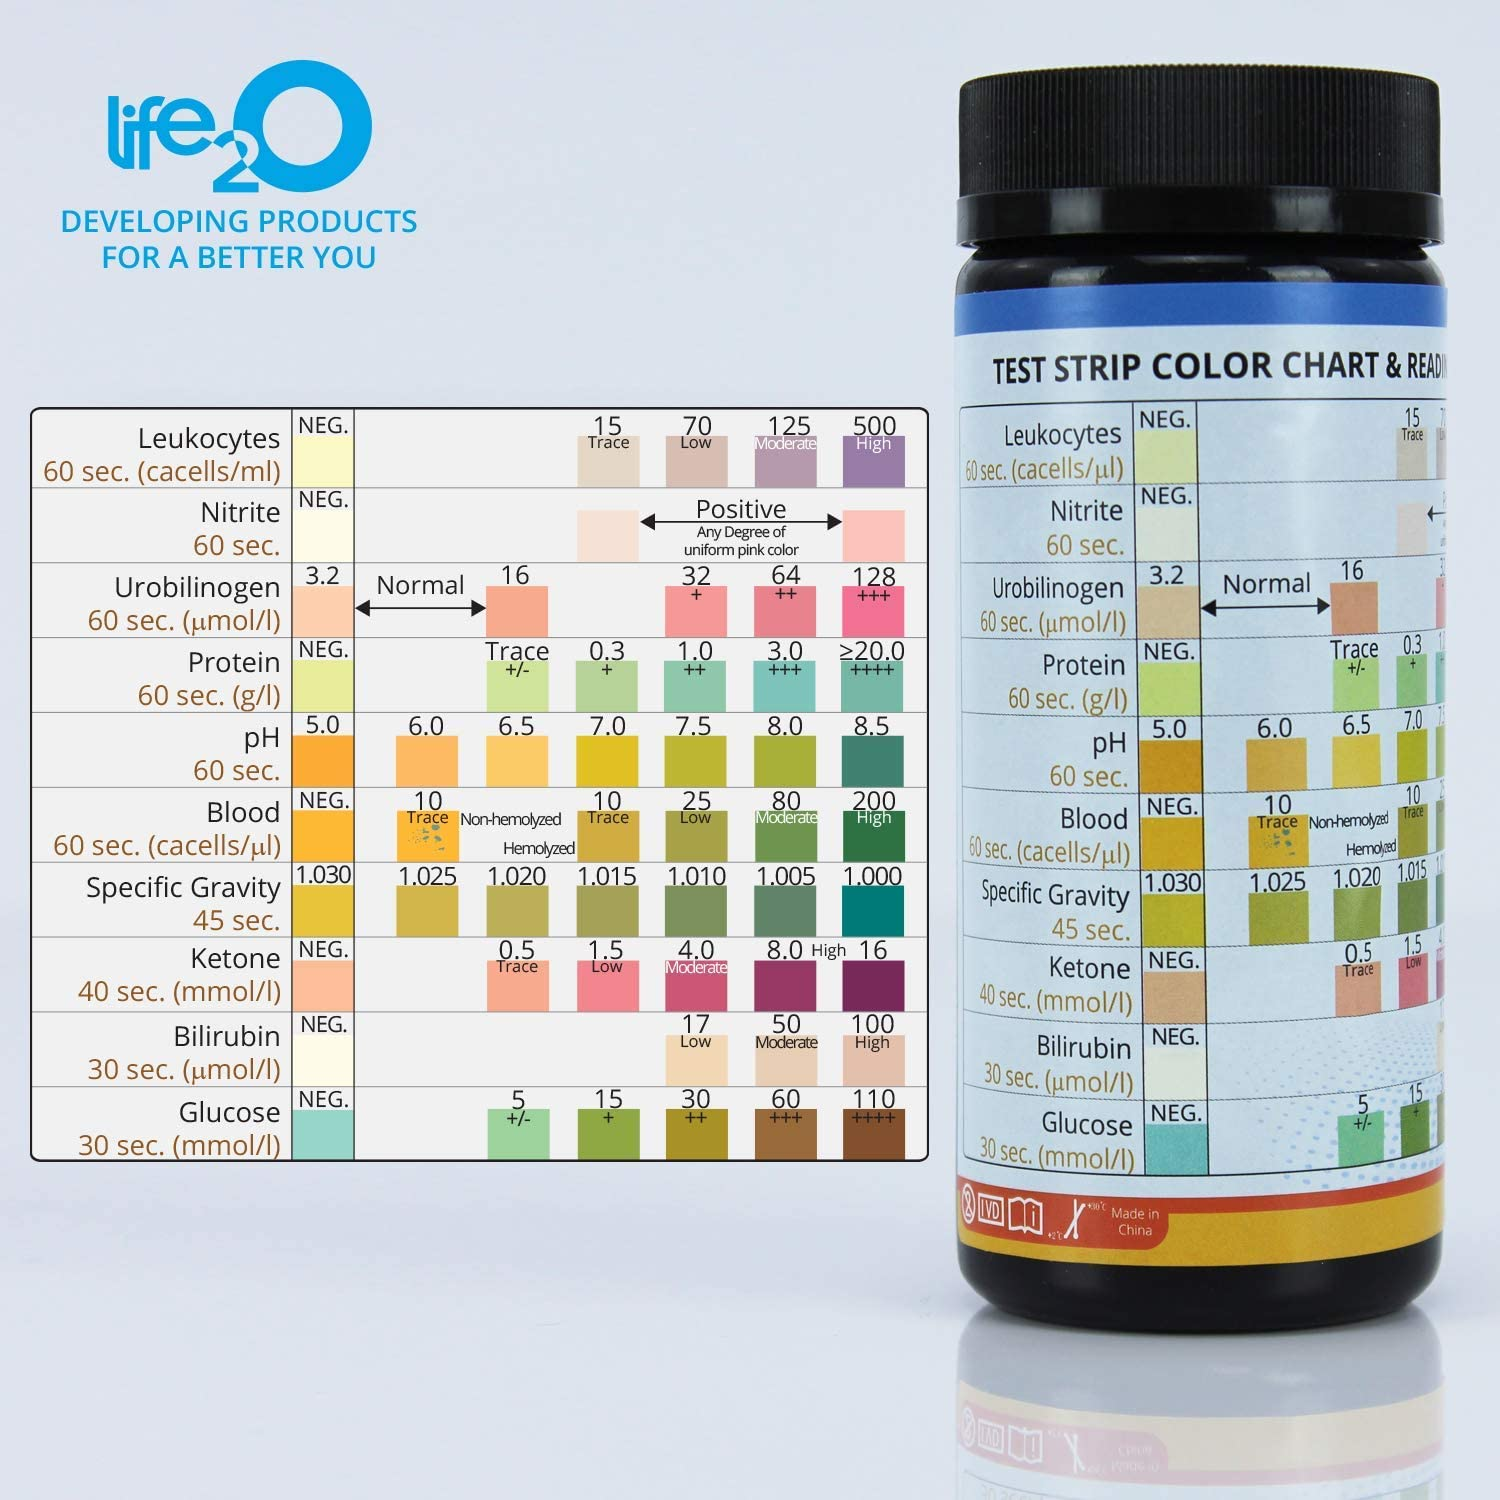 Complete 10-in-1 Urine Test Strips 100ct | Urinalysis Dip-Stick Testing Kit | Ketone, pH, Blood, UTI, Protein | Keto & Alkaline Diet, Ketosis, Kidney Infection & Liver Function | Free e-Book Included: Health & Personal Care